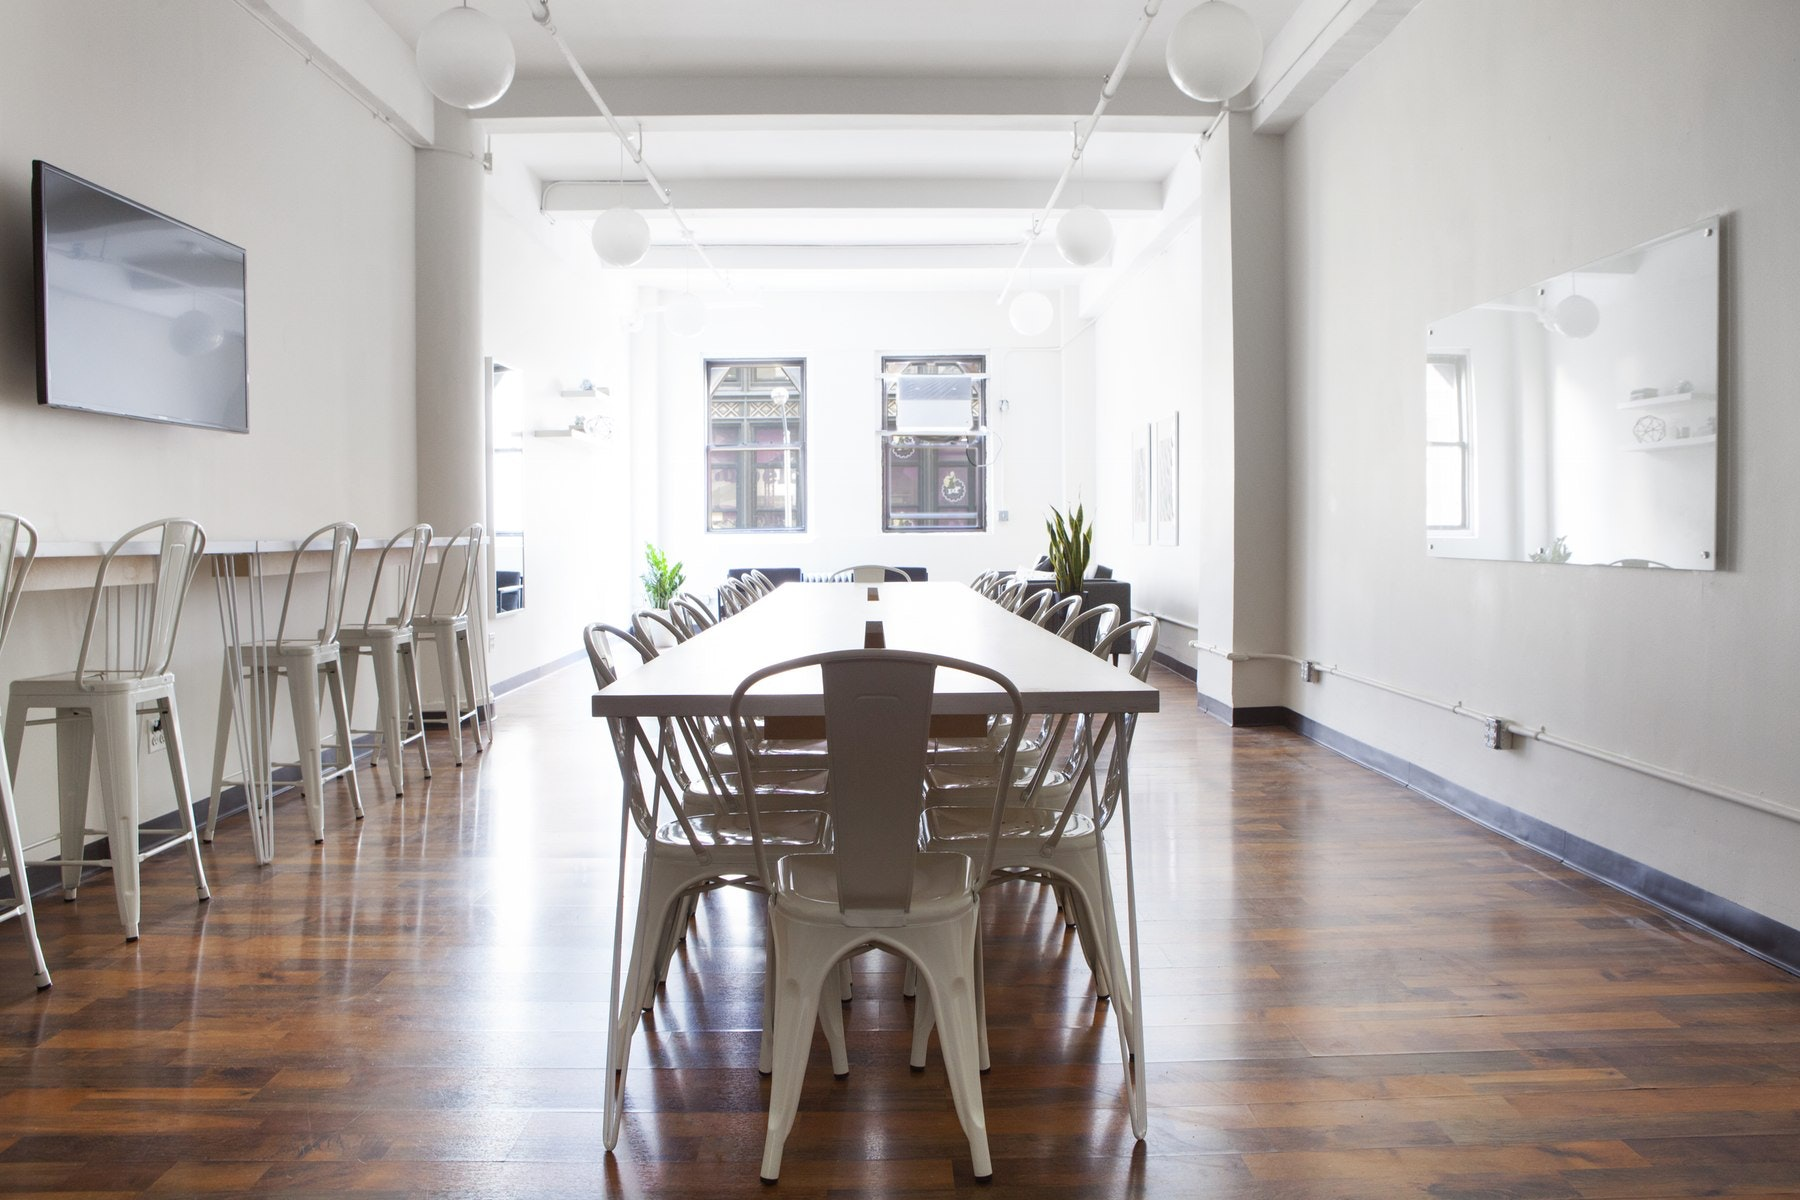 classroom space at 153 West 27th Street ,New York City